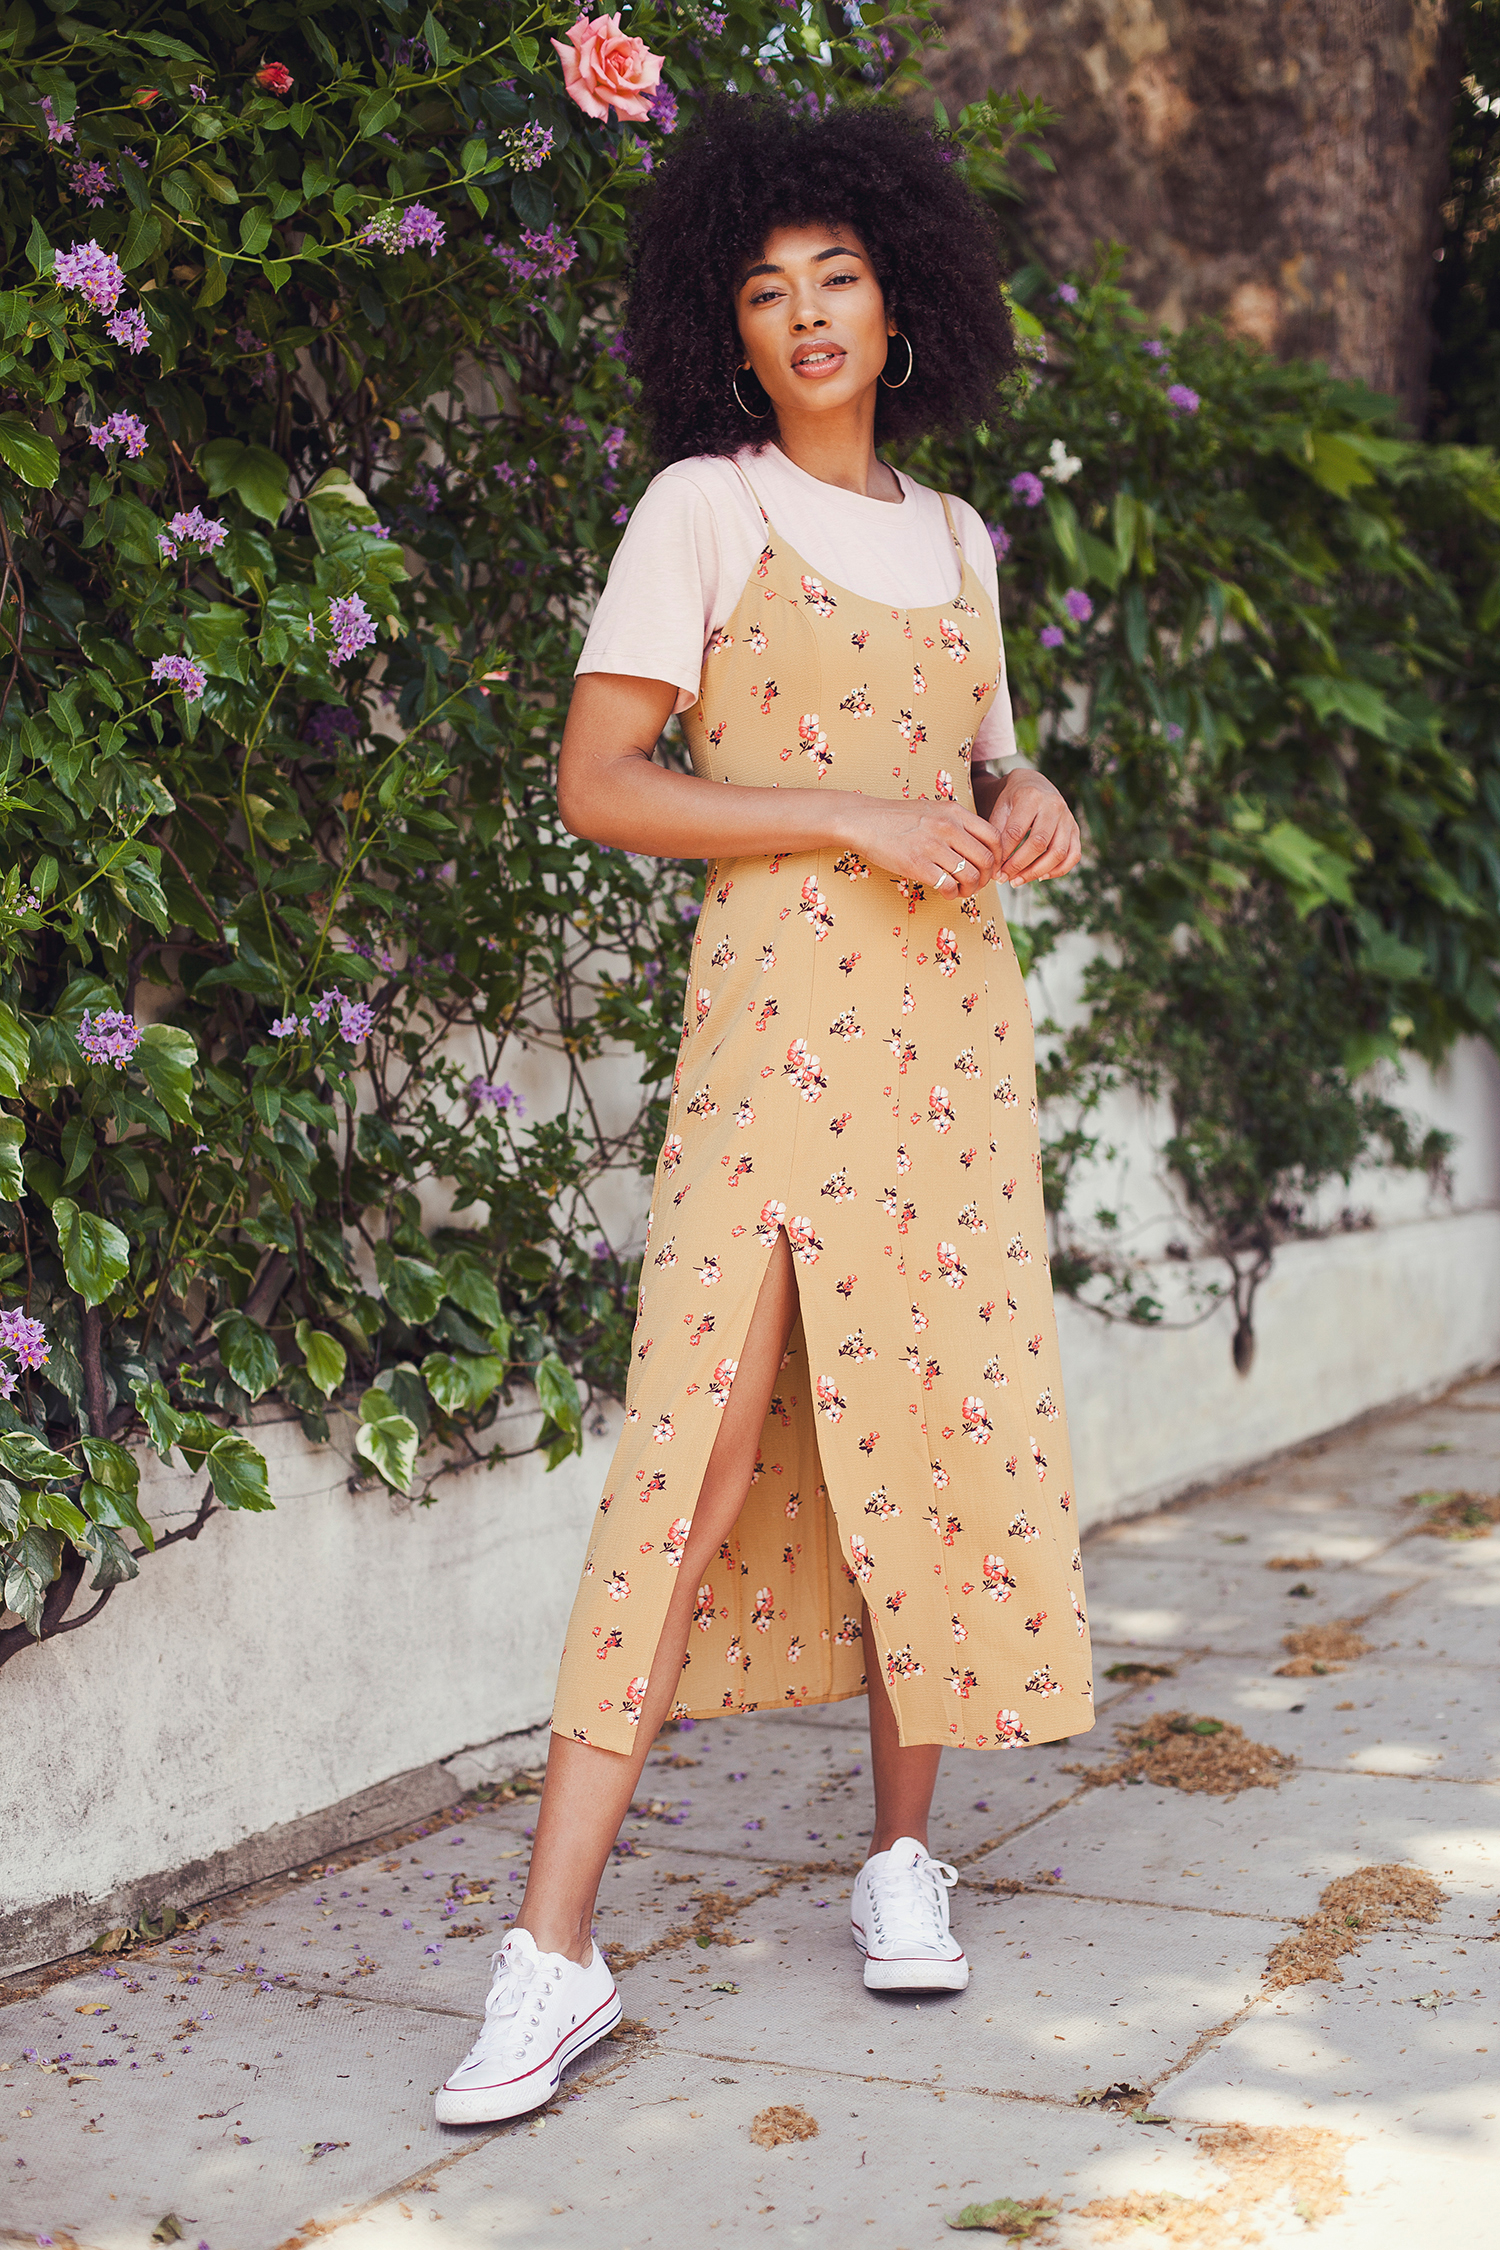 Lesley mixed race blogger fashion shoot in Notting Hill by Ailera Stone